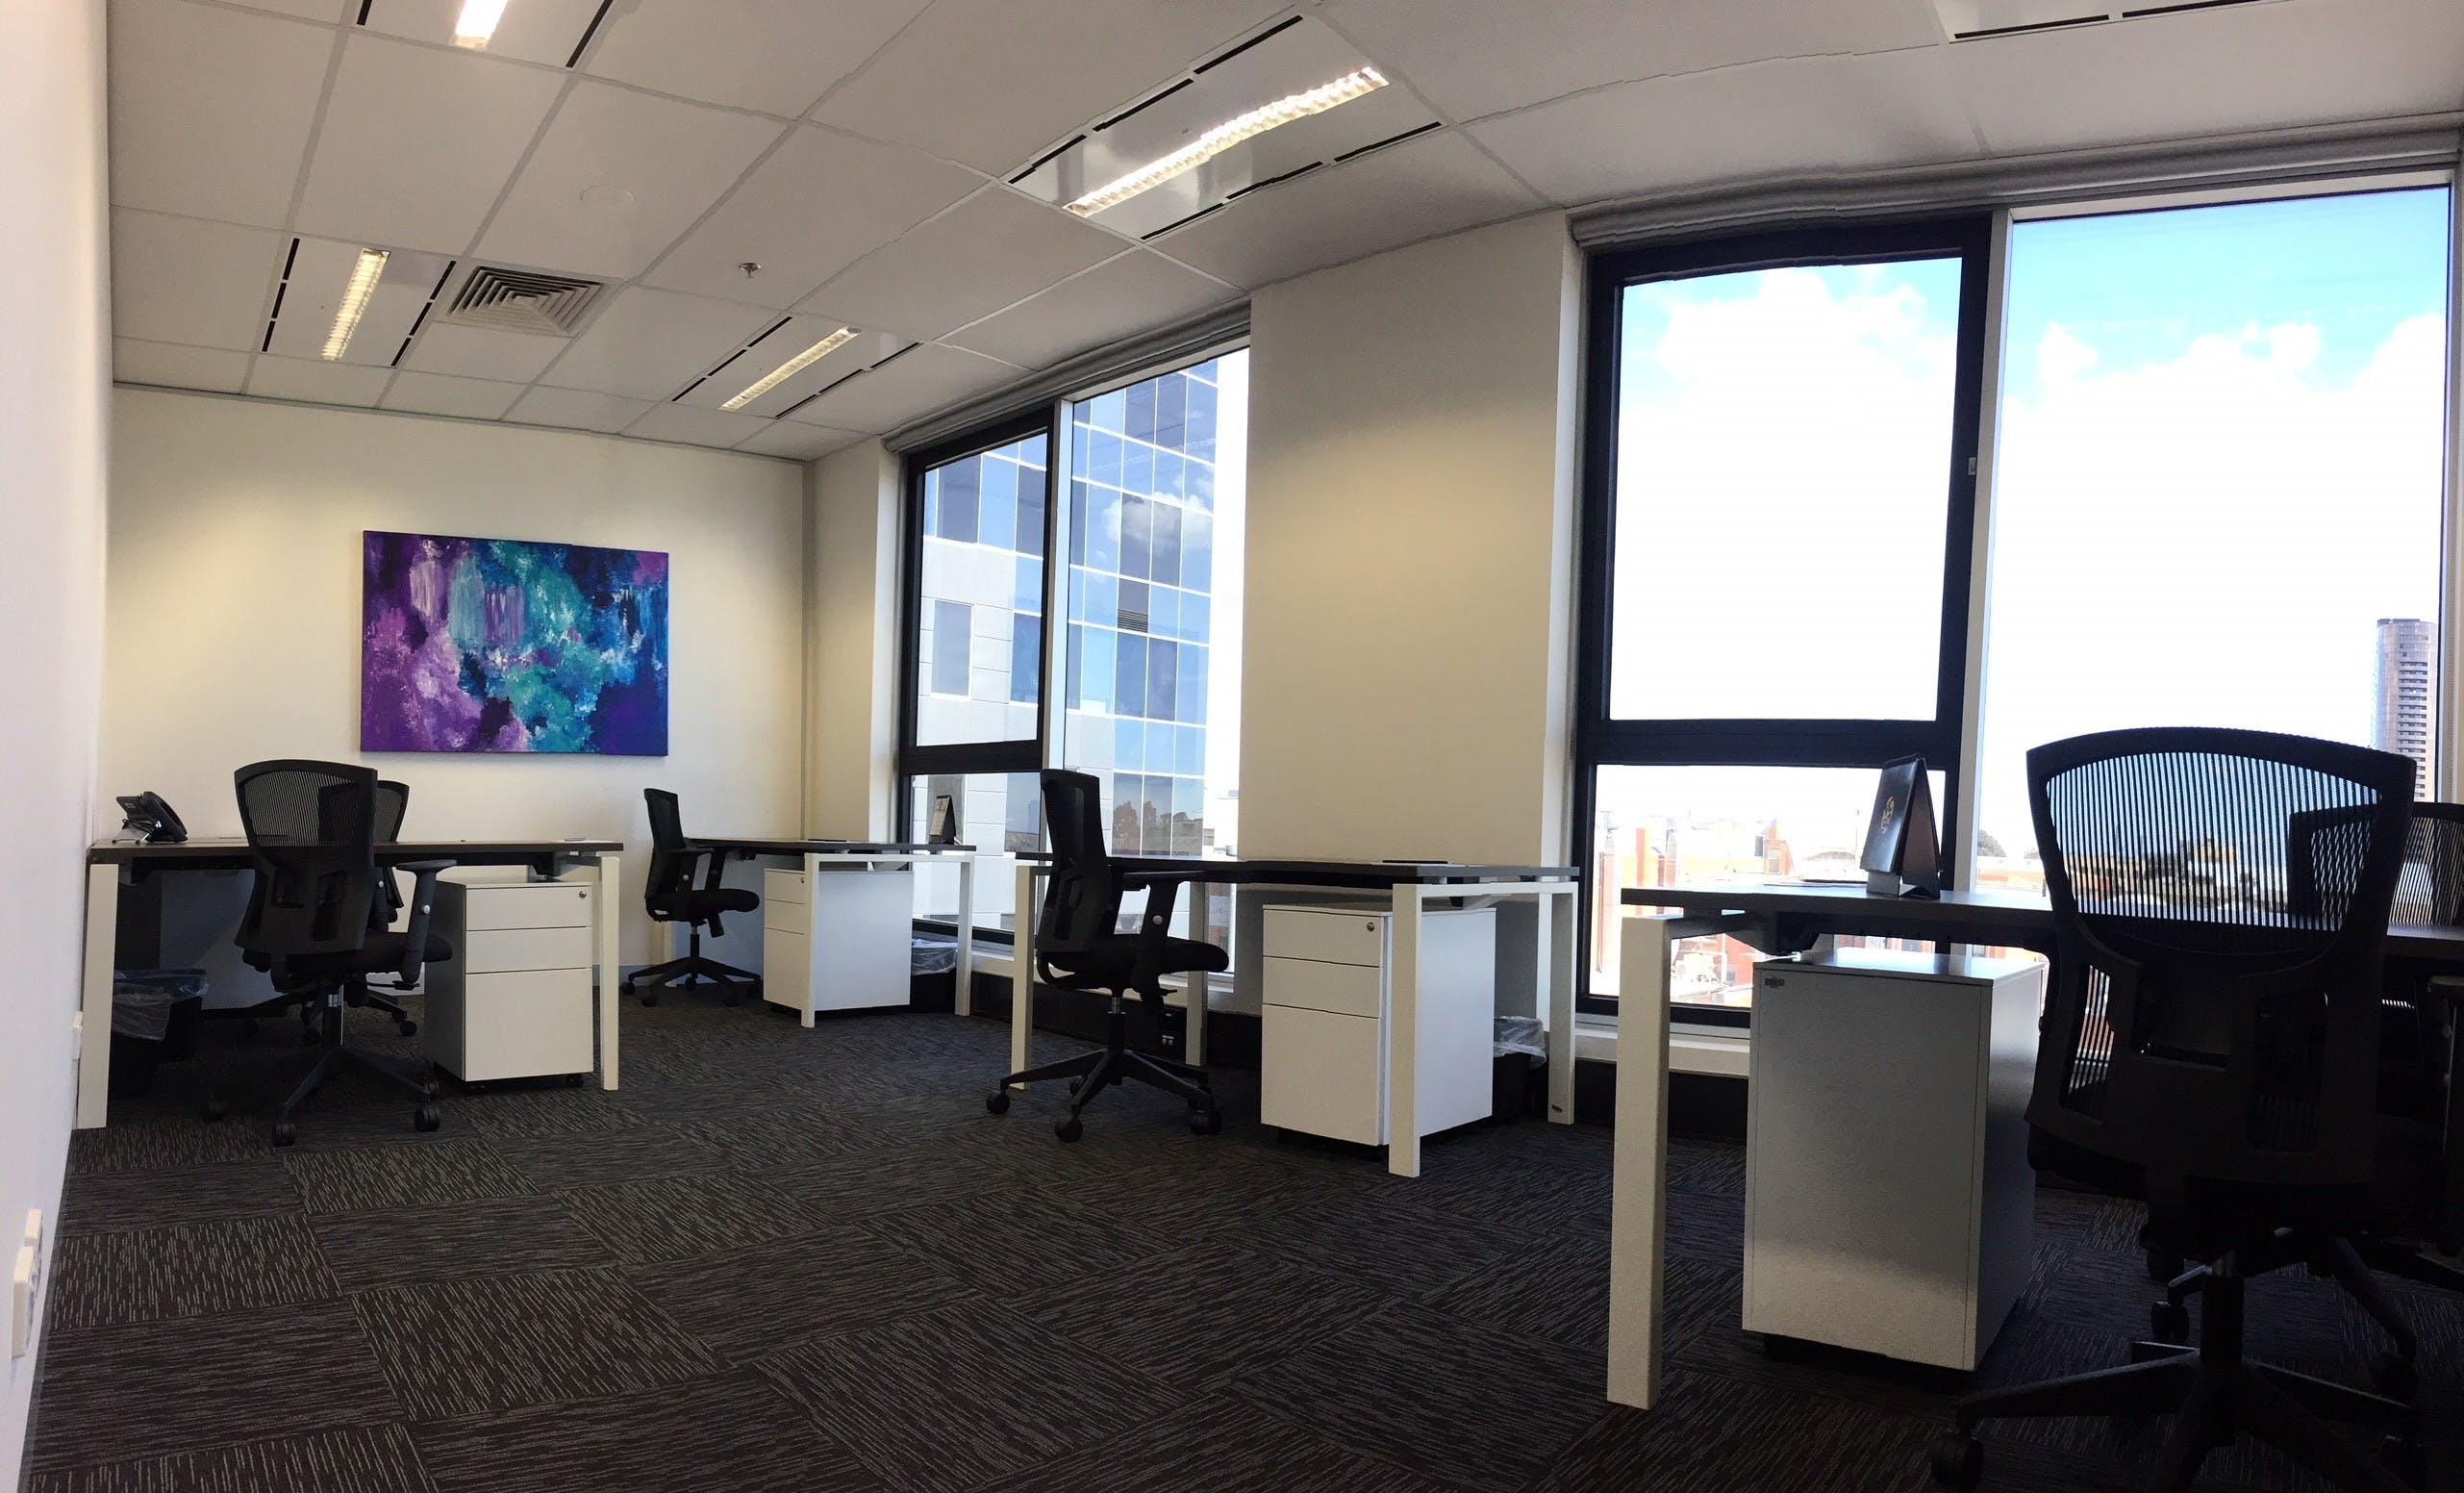 Office 4, serviced office at Victory Offices | Box Hill, image 1